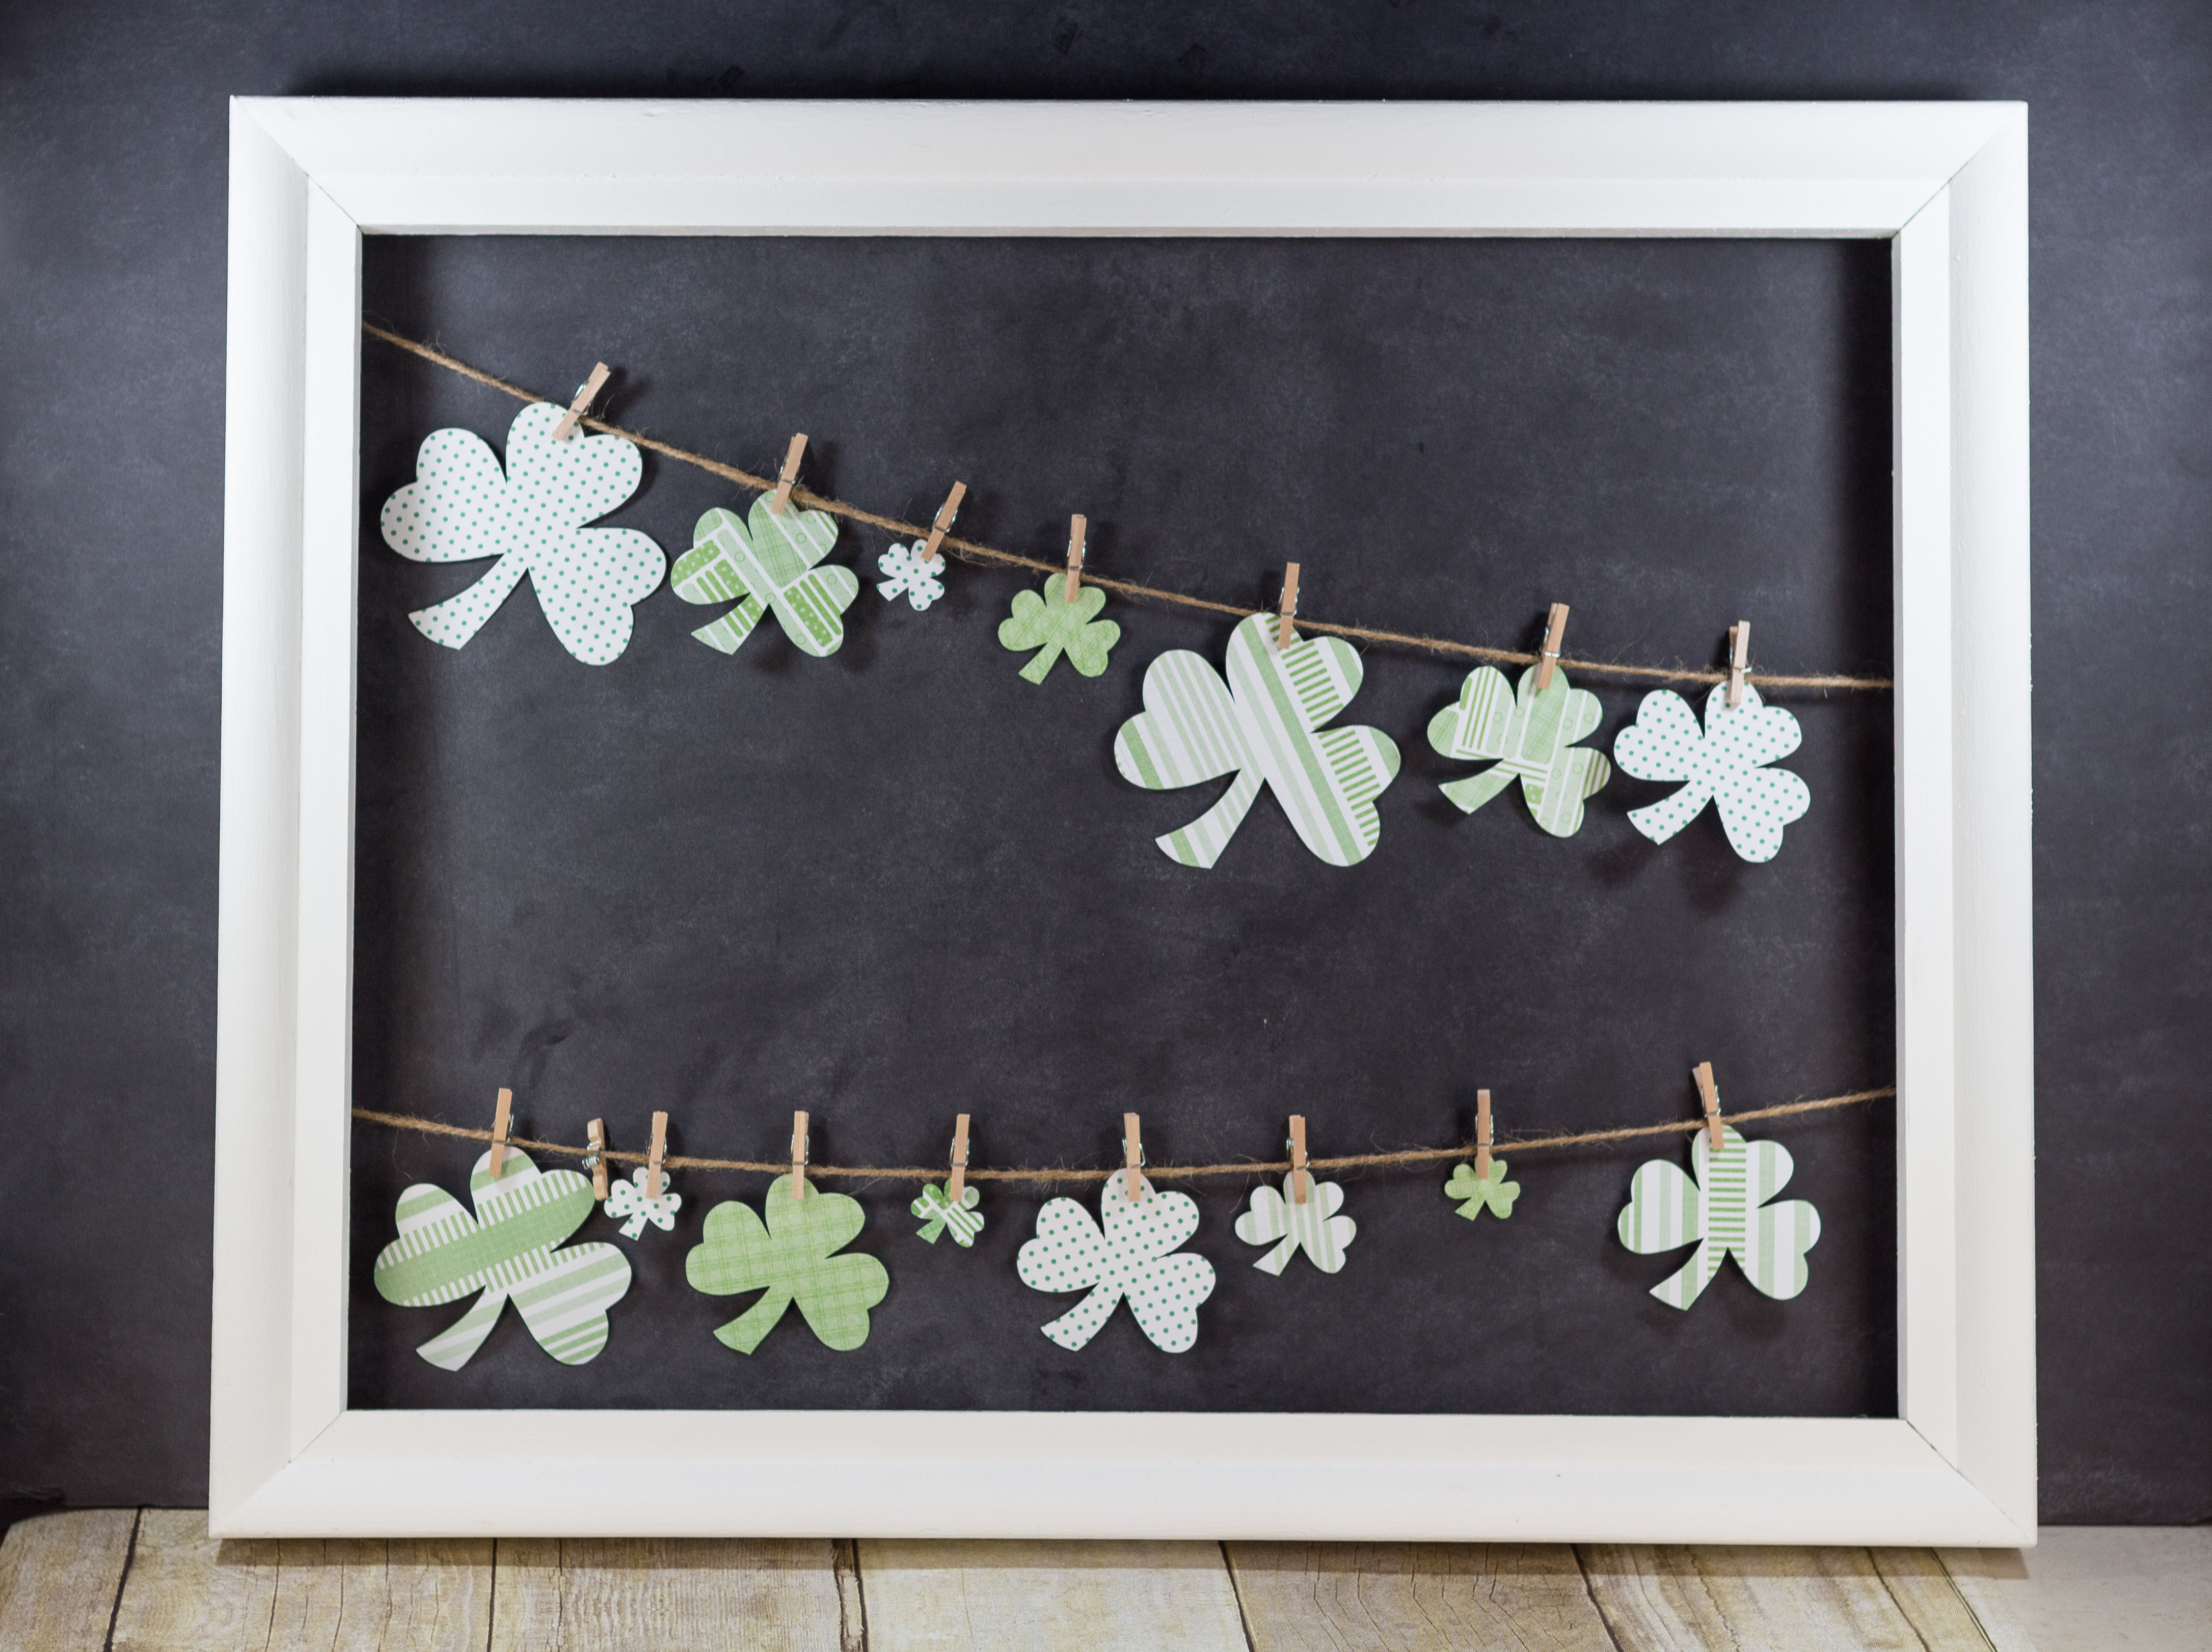 DIY St. Patrick's Day Shamrocks Hanging in Open White Frame   http://www.roseclearfield.com